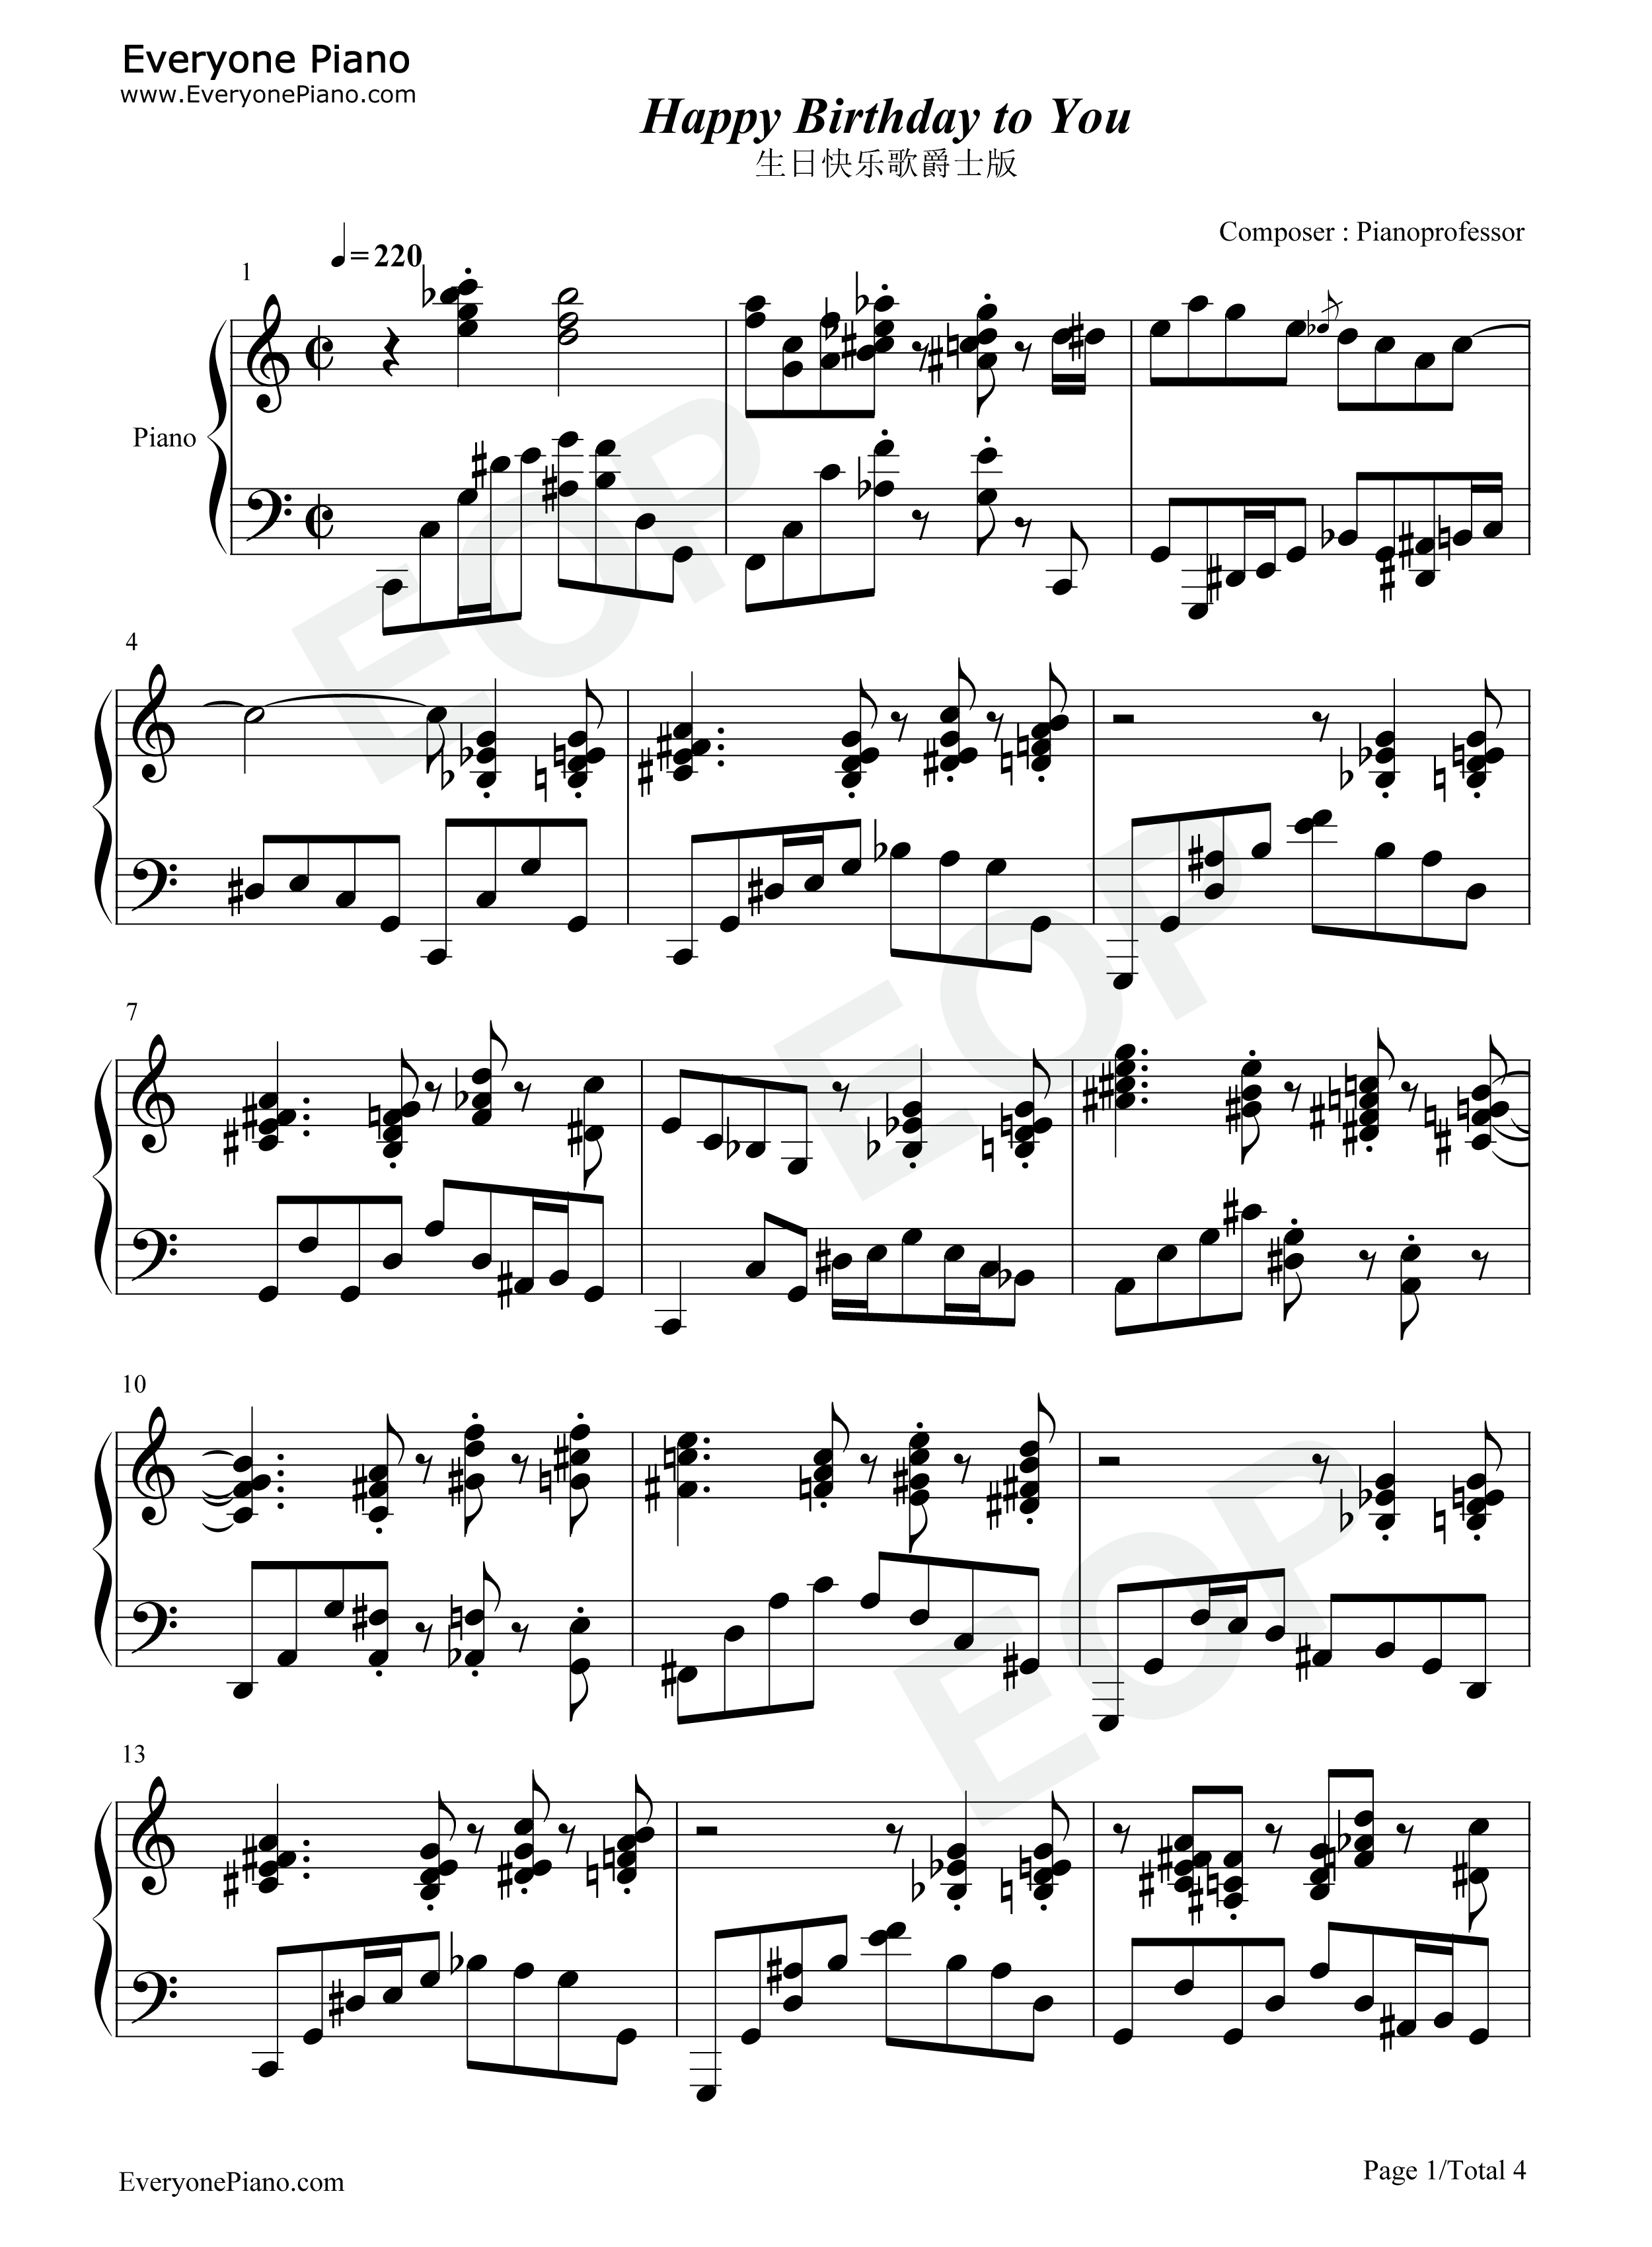 ... You-Jazz Version Stave Preview 1-Free Piano Sheet Music & Piano Chords